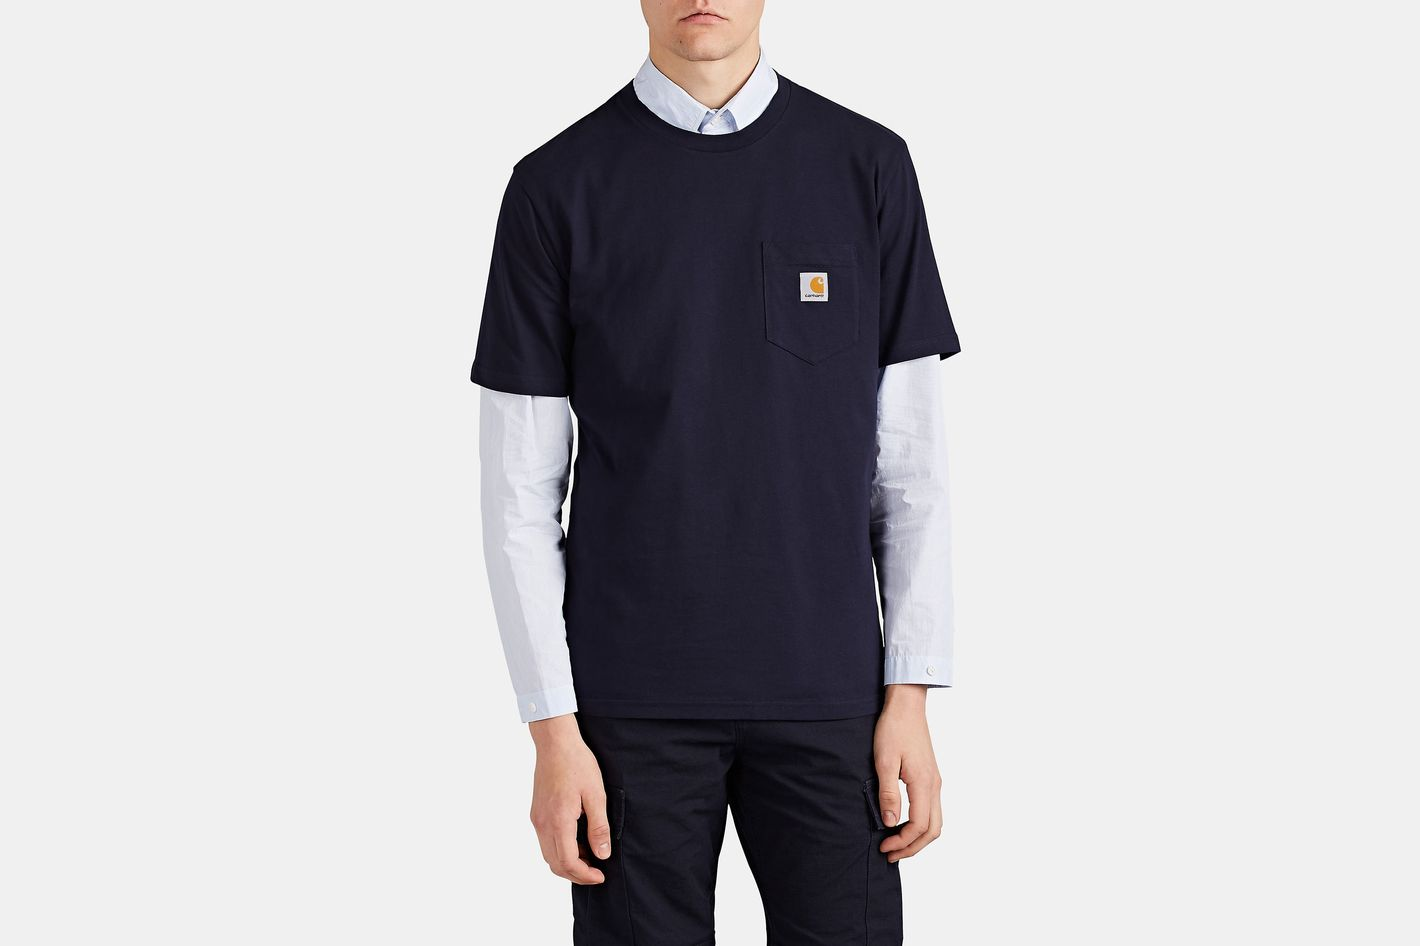 Carhartt Work in Progress Logo Cotton Jersey T-Shirt